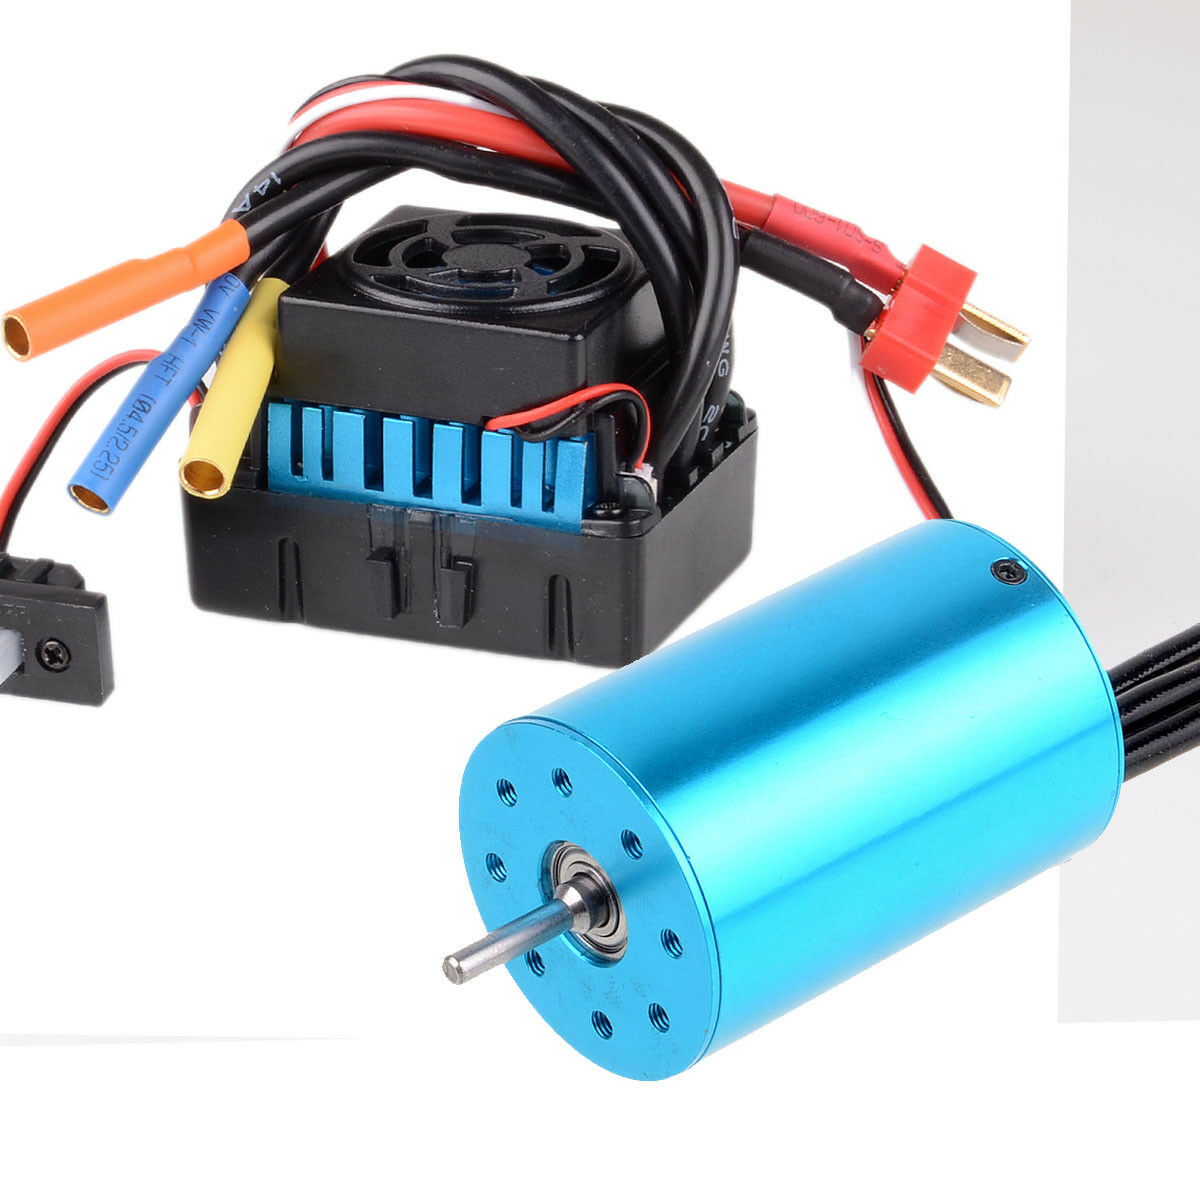 60A 03307+03302 WaterProof Brushless ESC & RS540 Brushless Motor 3300KV 107051